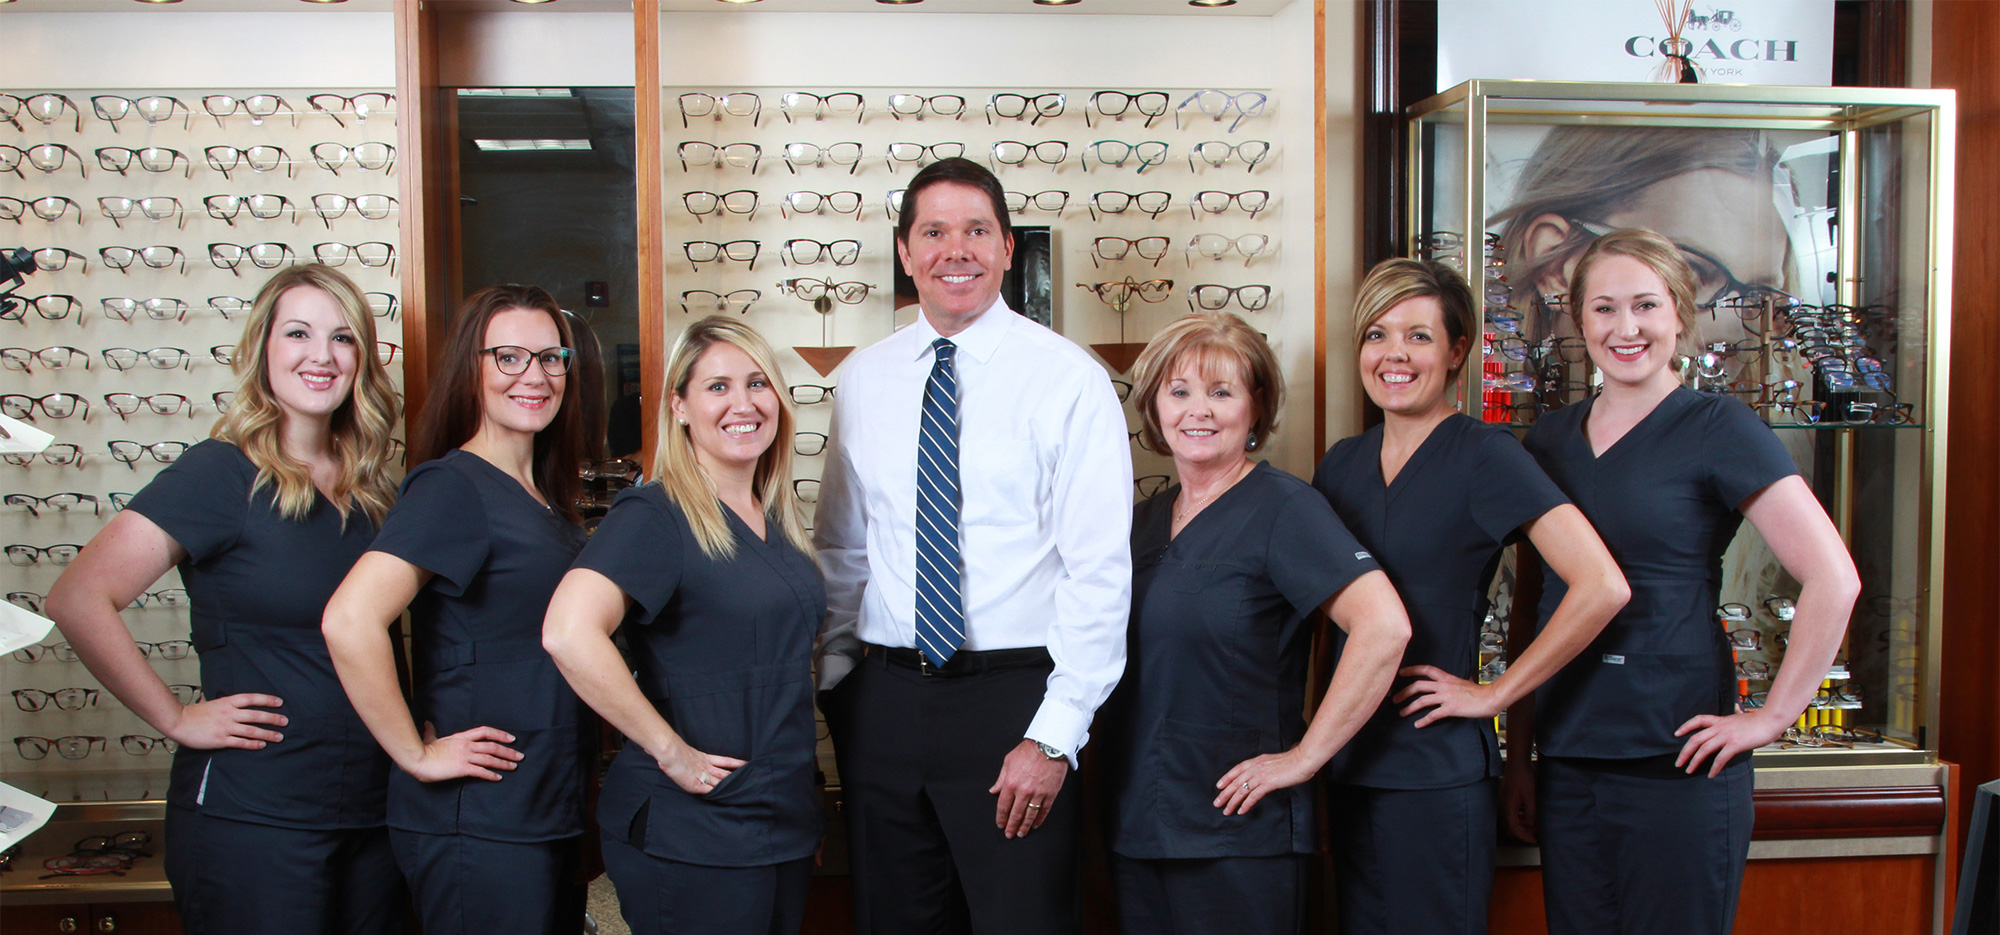 Dr Fry and Staff